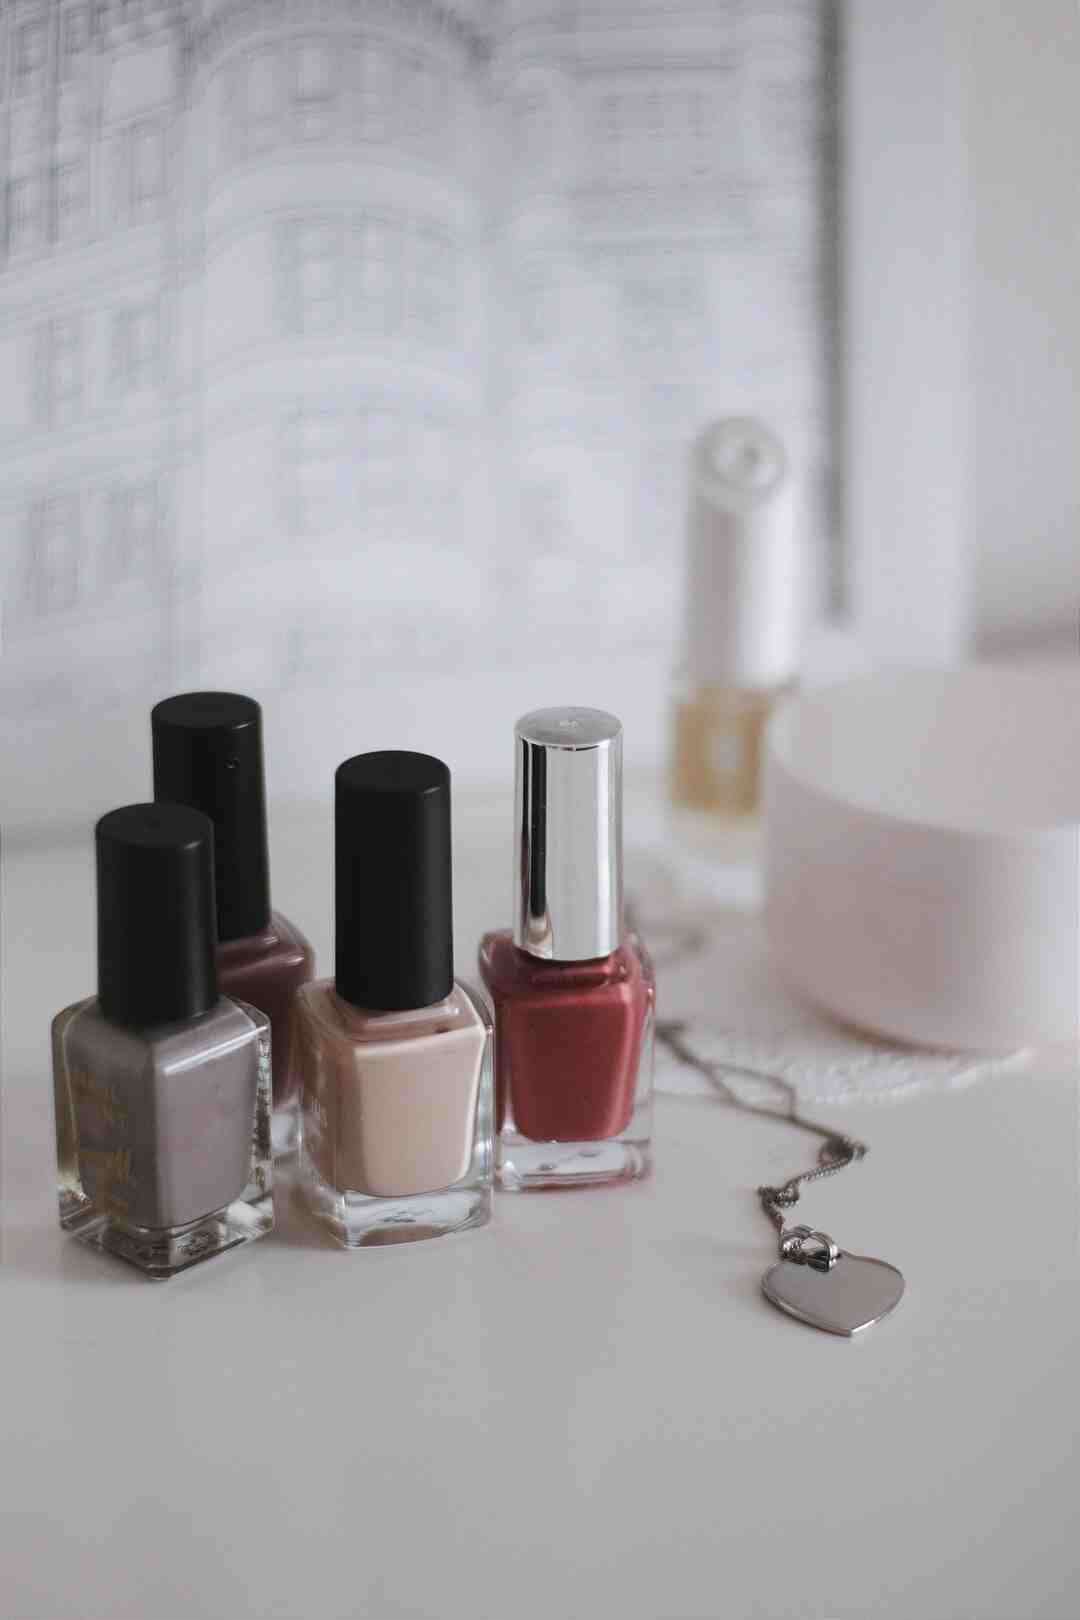 Are press on nails better than acrylic?